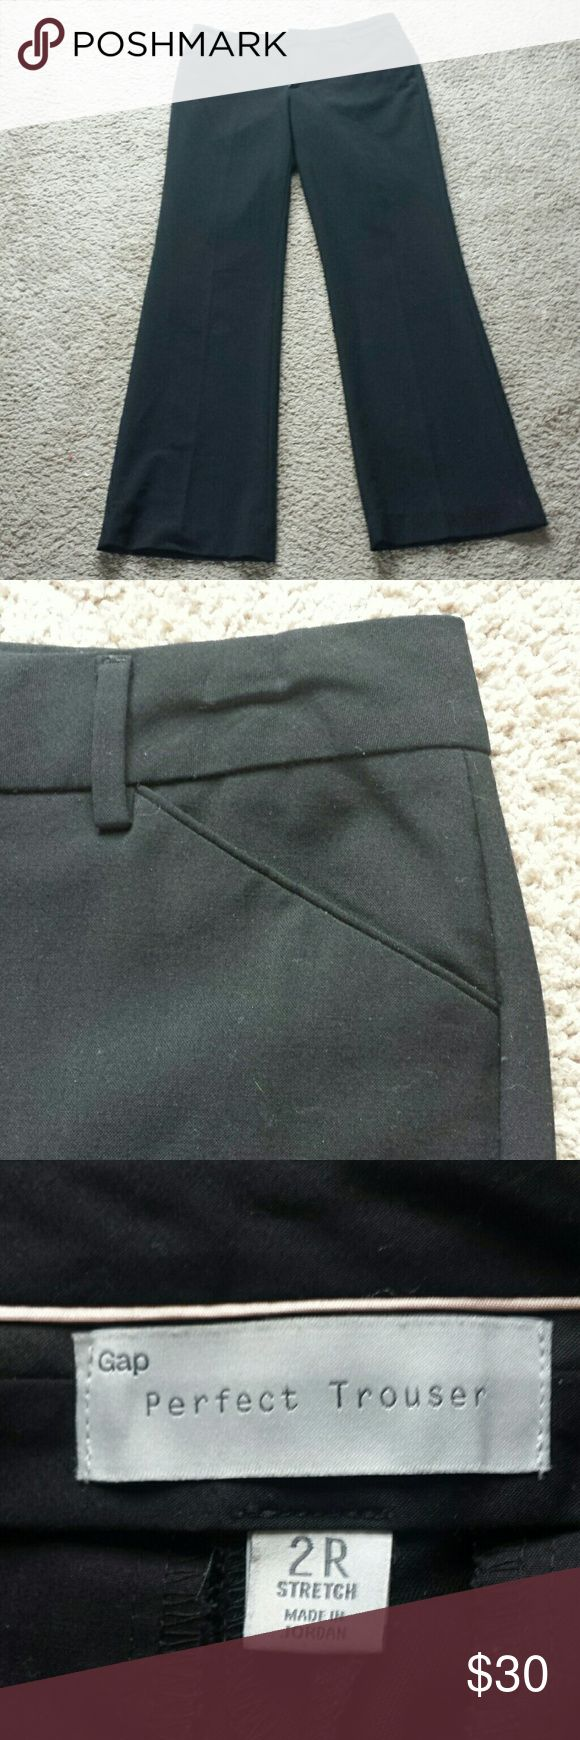 Classic black trousers Black wide leg Gap trousers. A wardrobe classic. Worn several times but in excellent condition. GAP Pants Trousers